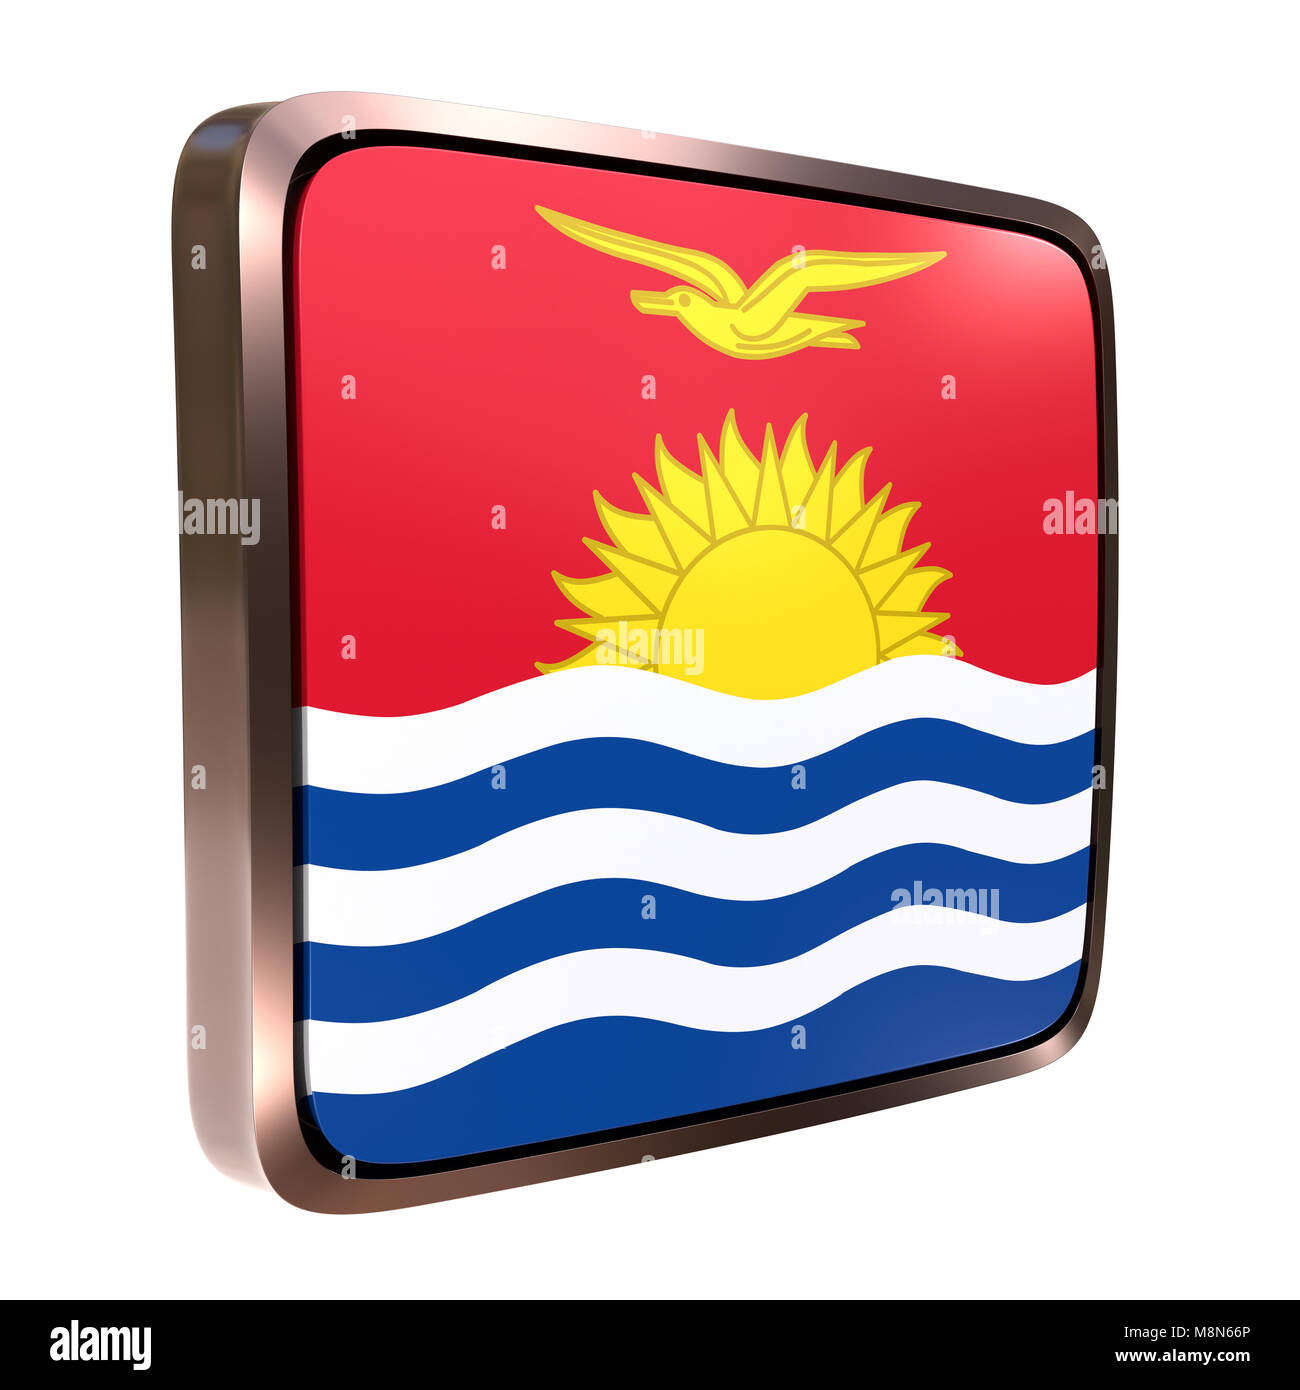 3d rendering of a Kiribati flag icon with a bright frame. Isolated on white background. - Stock Image